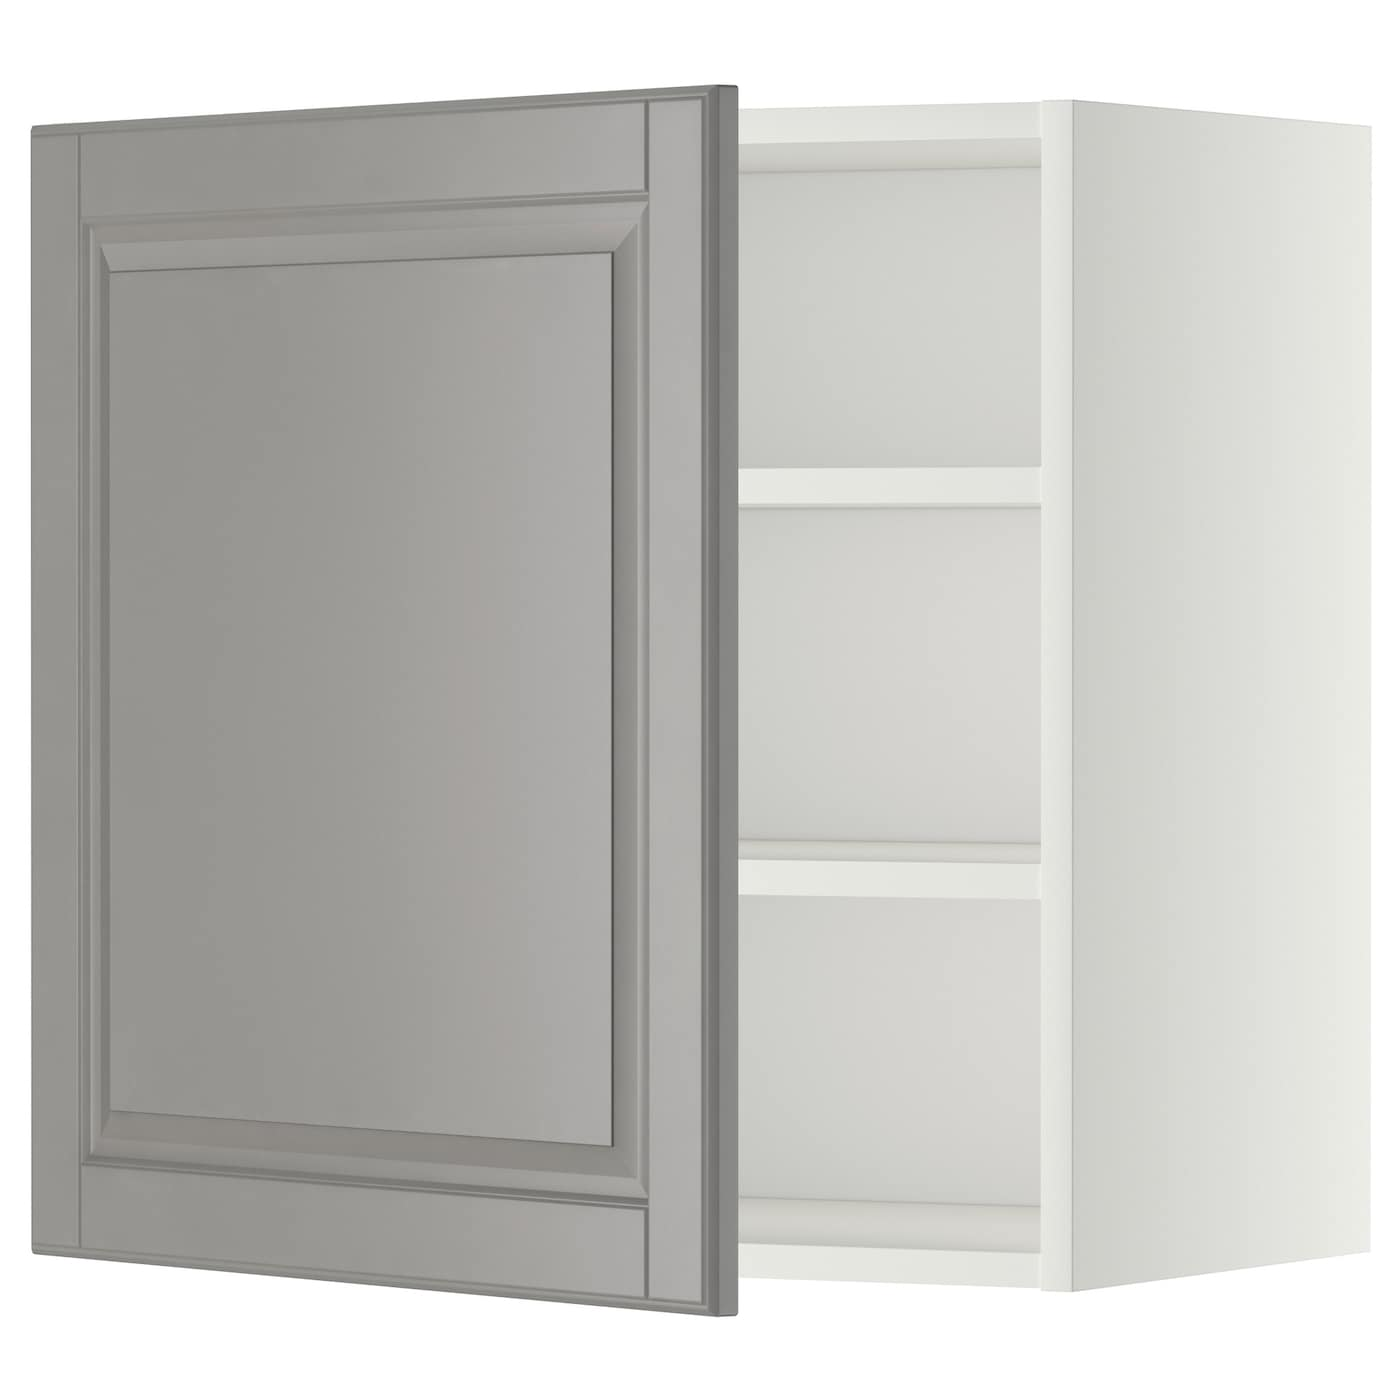 Metod Wall Cabinet With Shelves: METOD Wall Cabinet With Shelves White/bodbyn Grey 60 X 60